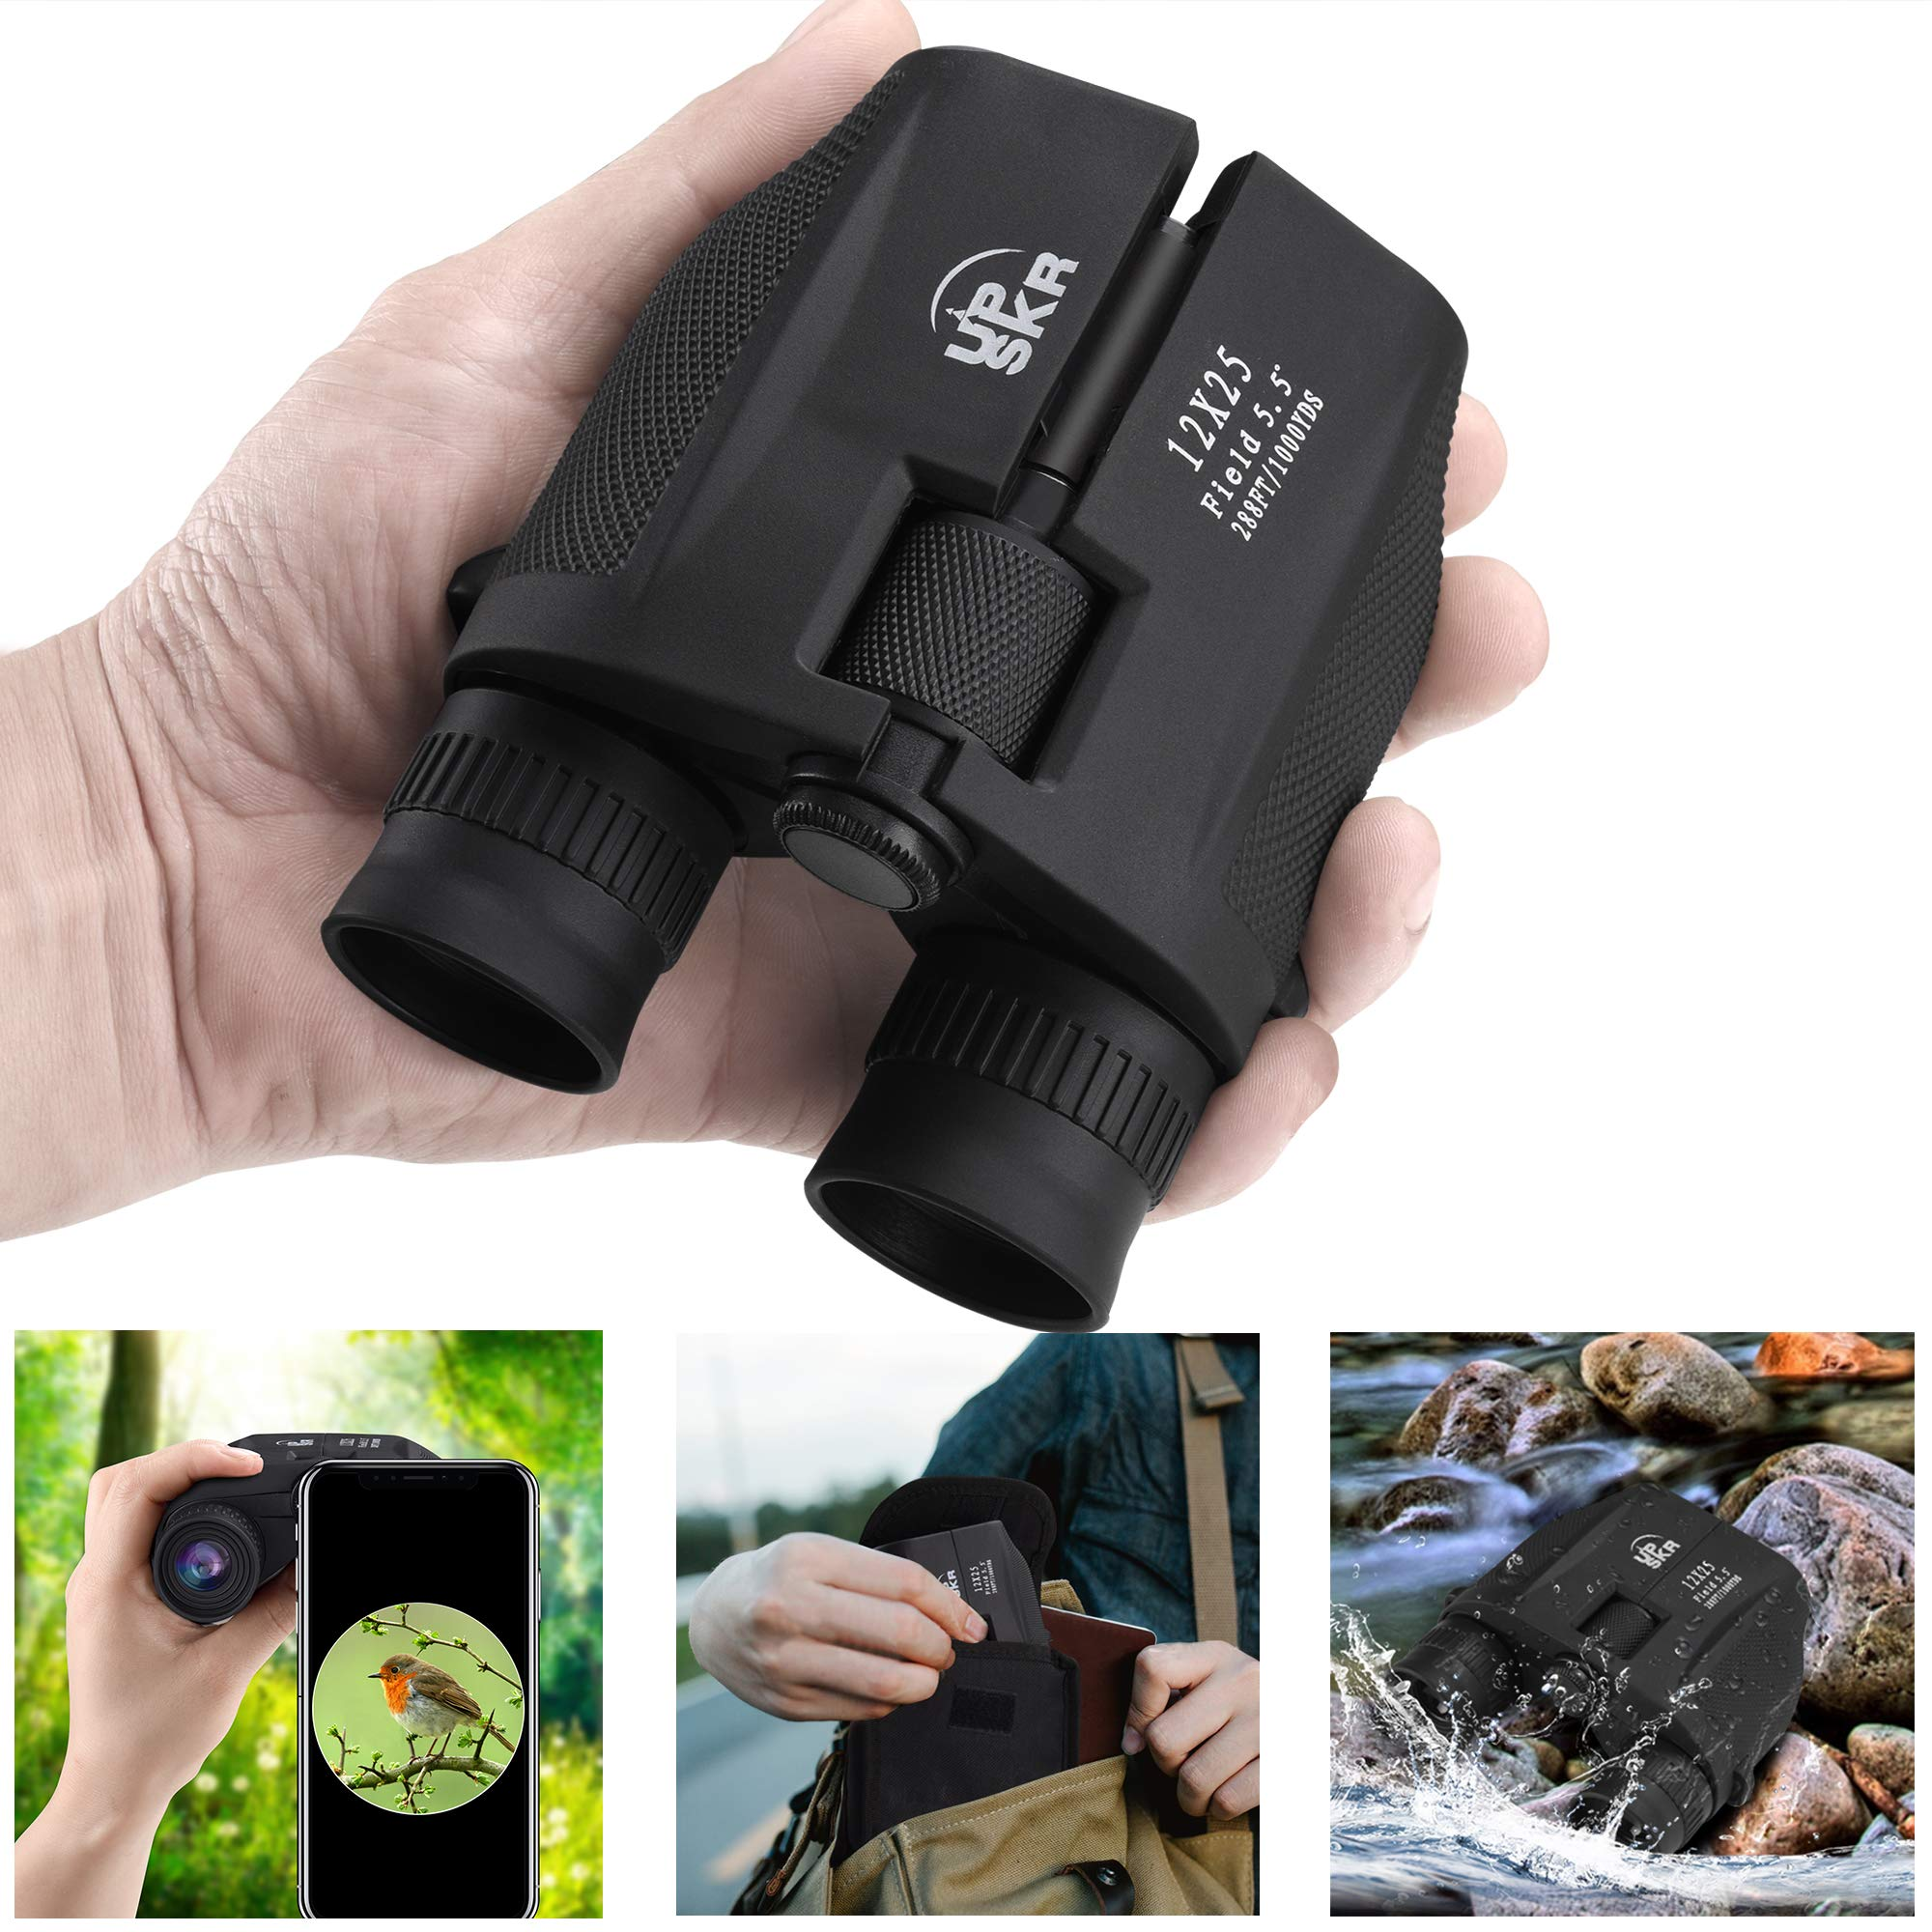 UPSKR 12x25 Compact Binoculars with Low Light Night Vision, Large Eyepiece High Power Waterproof Binocular Easy Focus for Outdoor Hunting, bird watching, Traveling, Sightseeing Fit For adults and kids by UPSKR